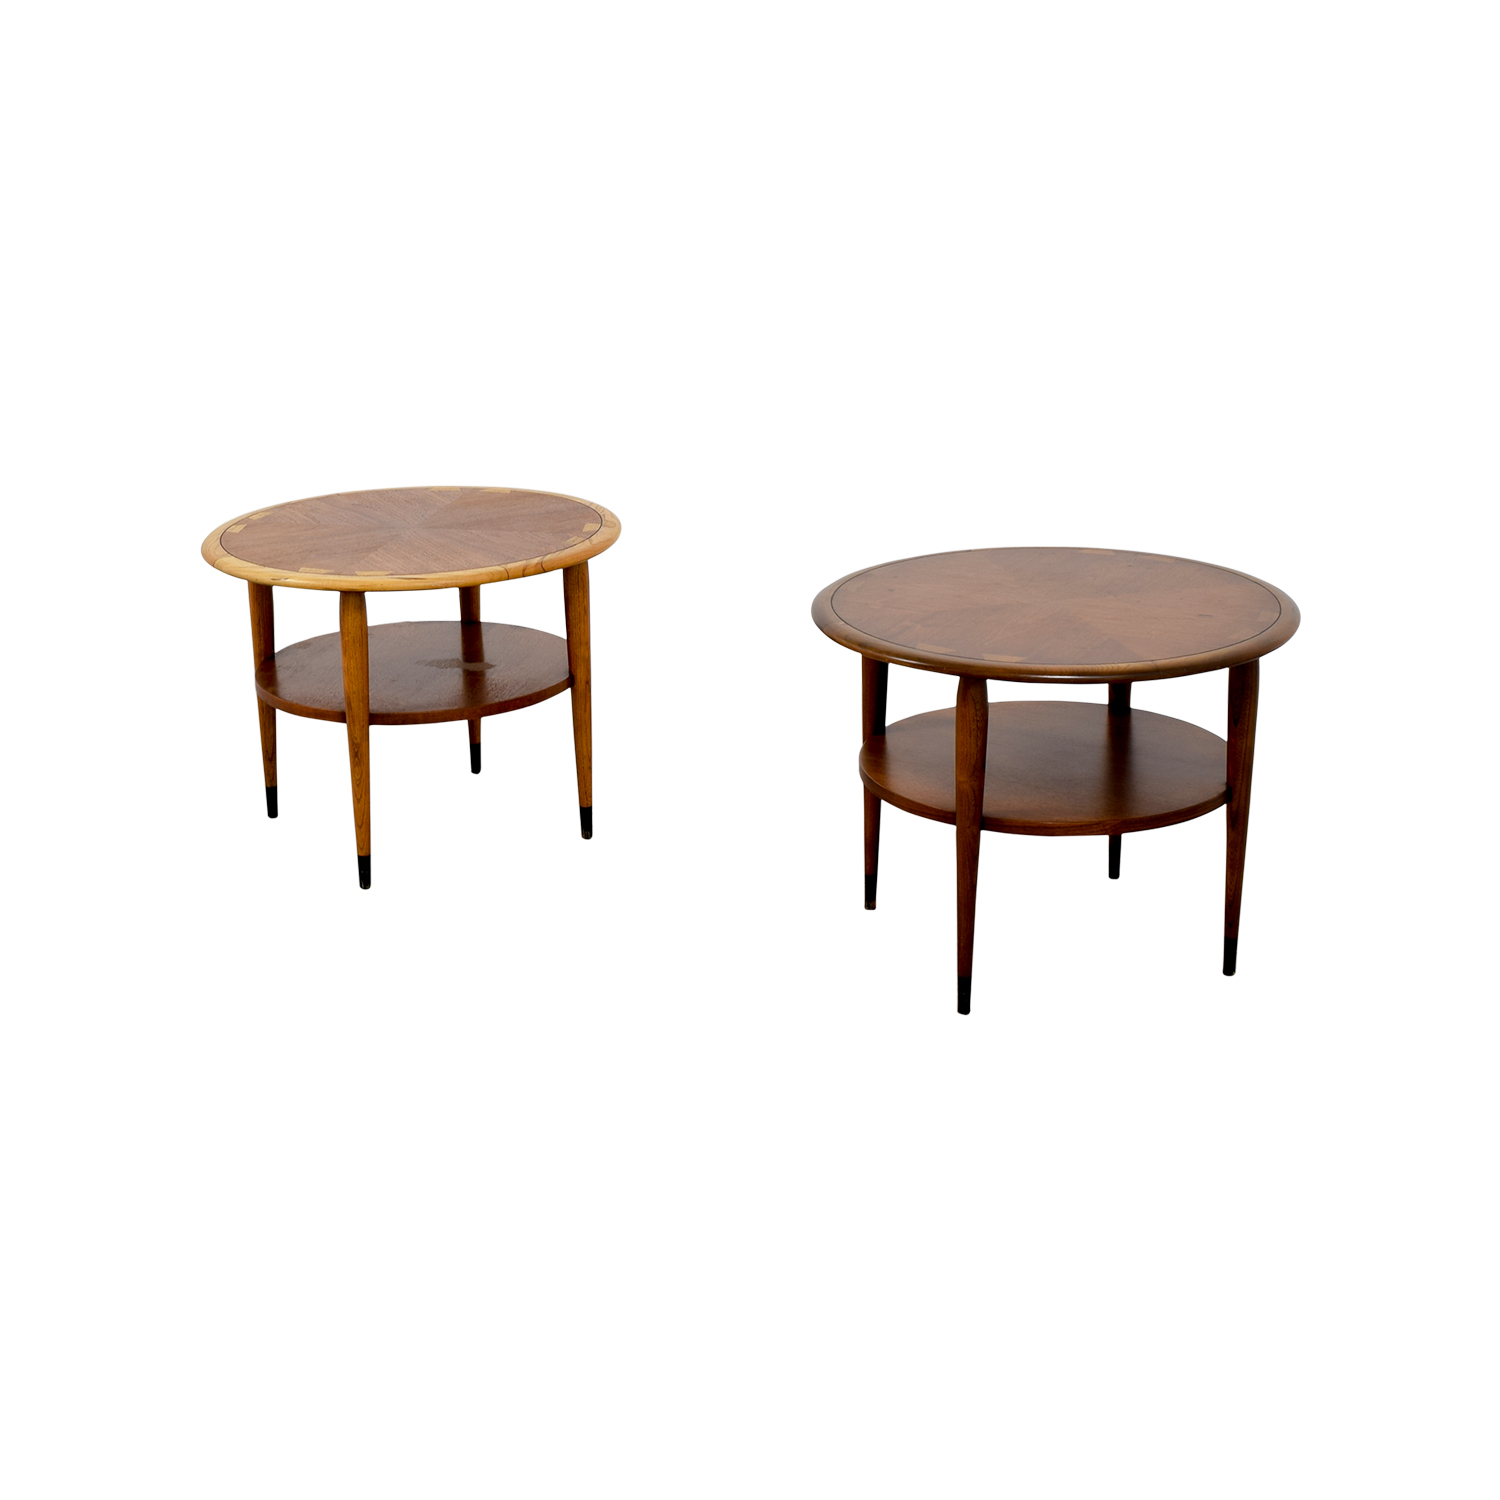 82 off lane furniture lane furniture round side tables for Lane furniture